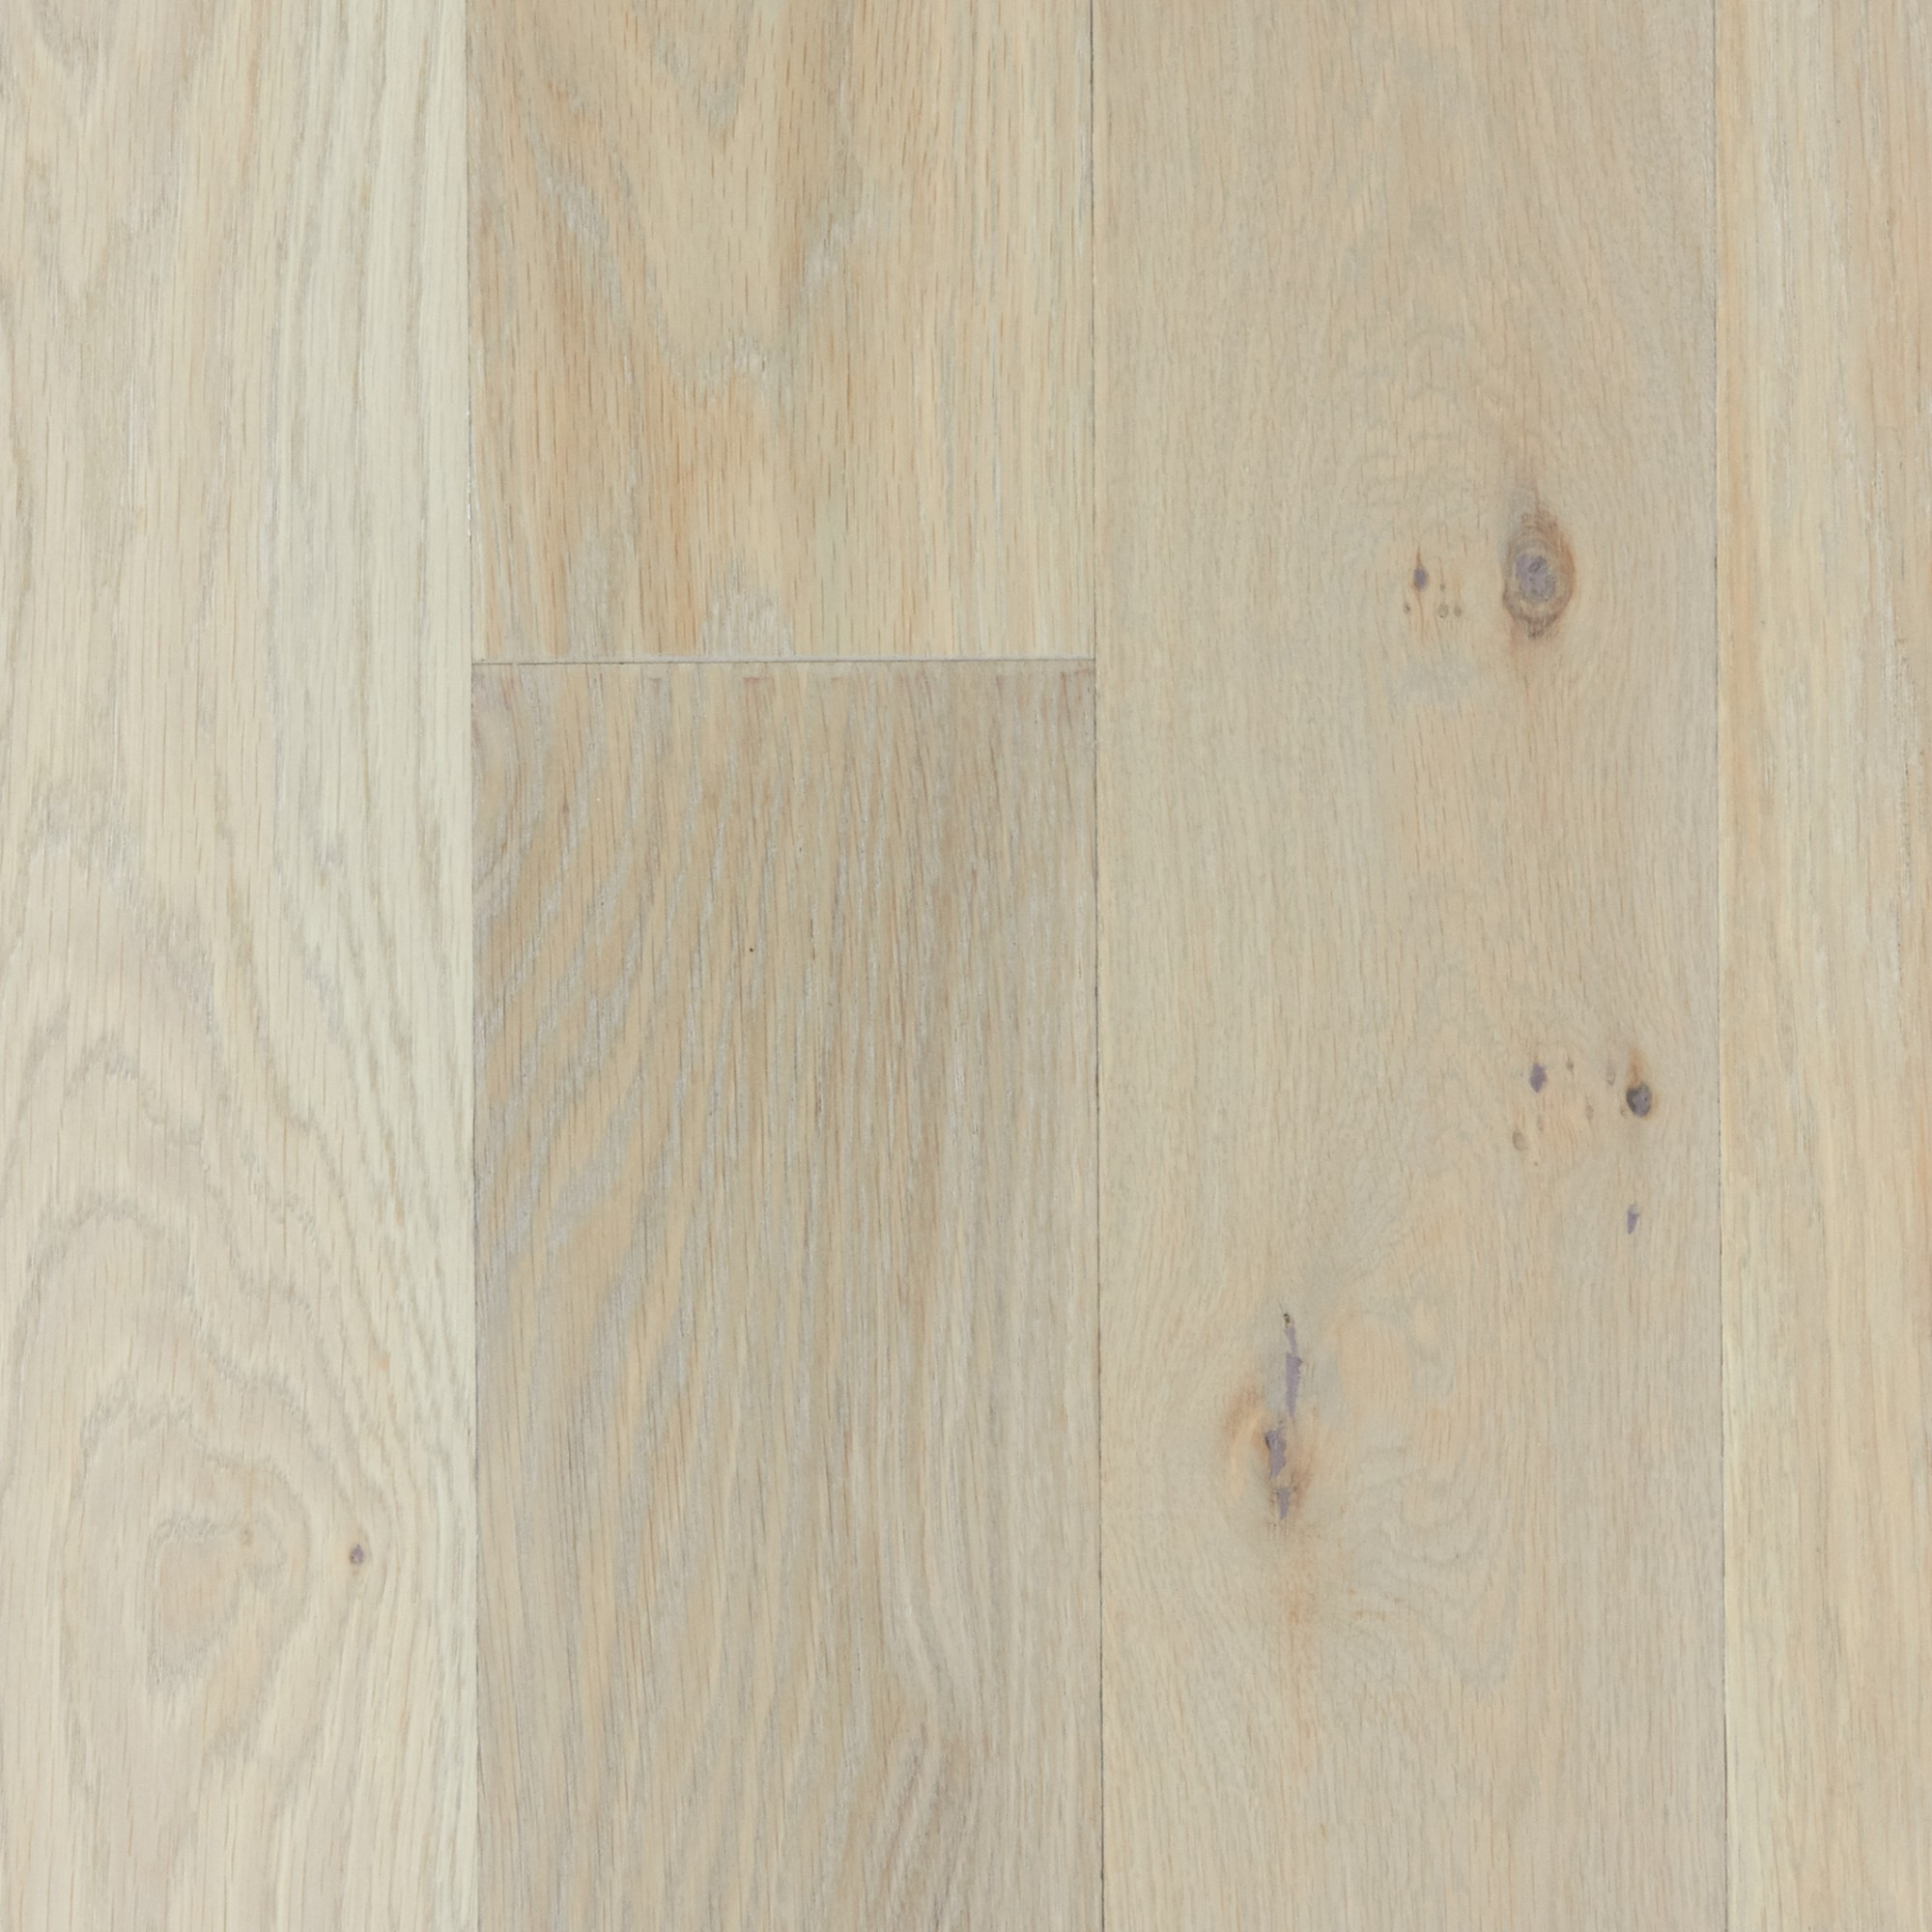 kingsmill floor natural birch hand flooring scraped sonoma pin solid hardwood